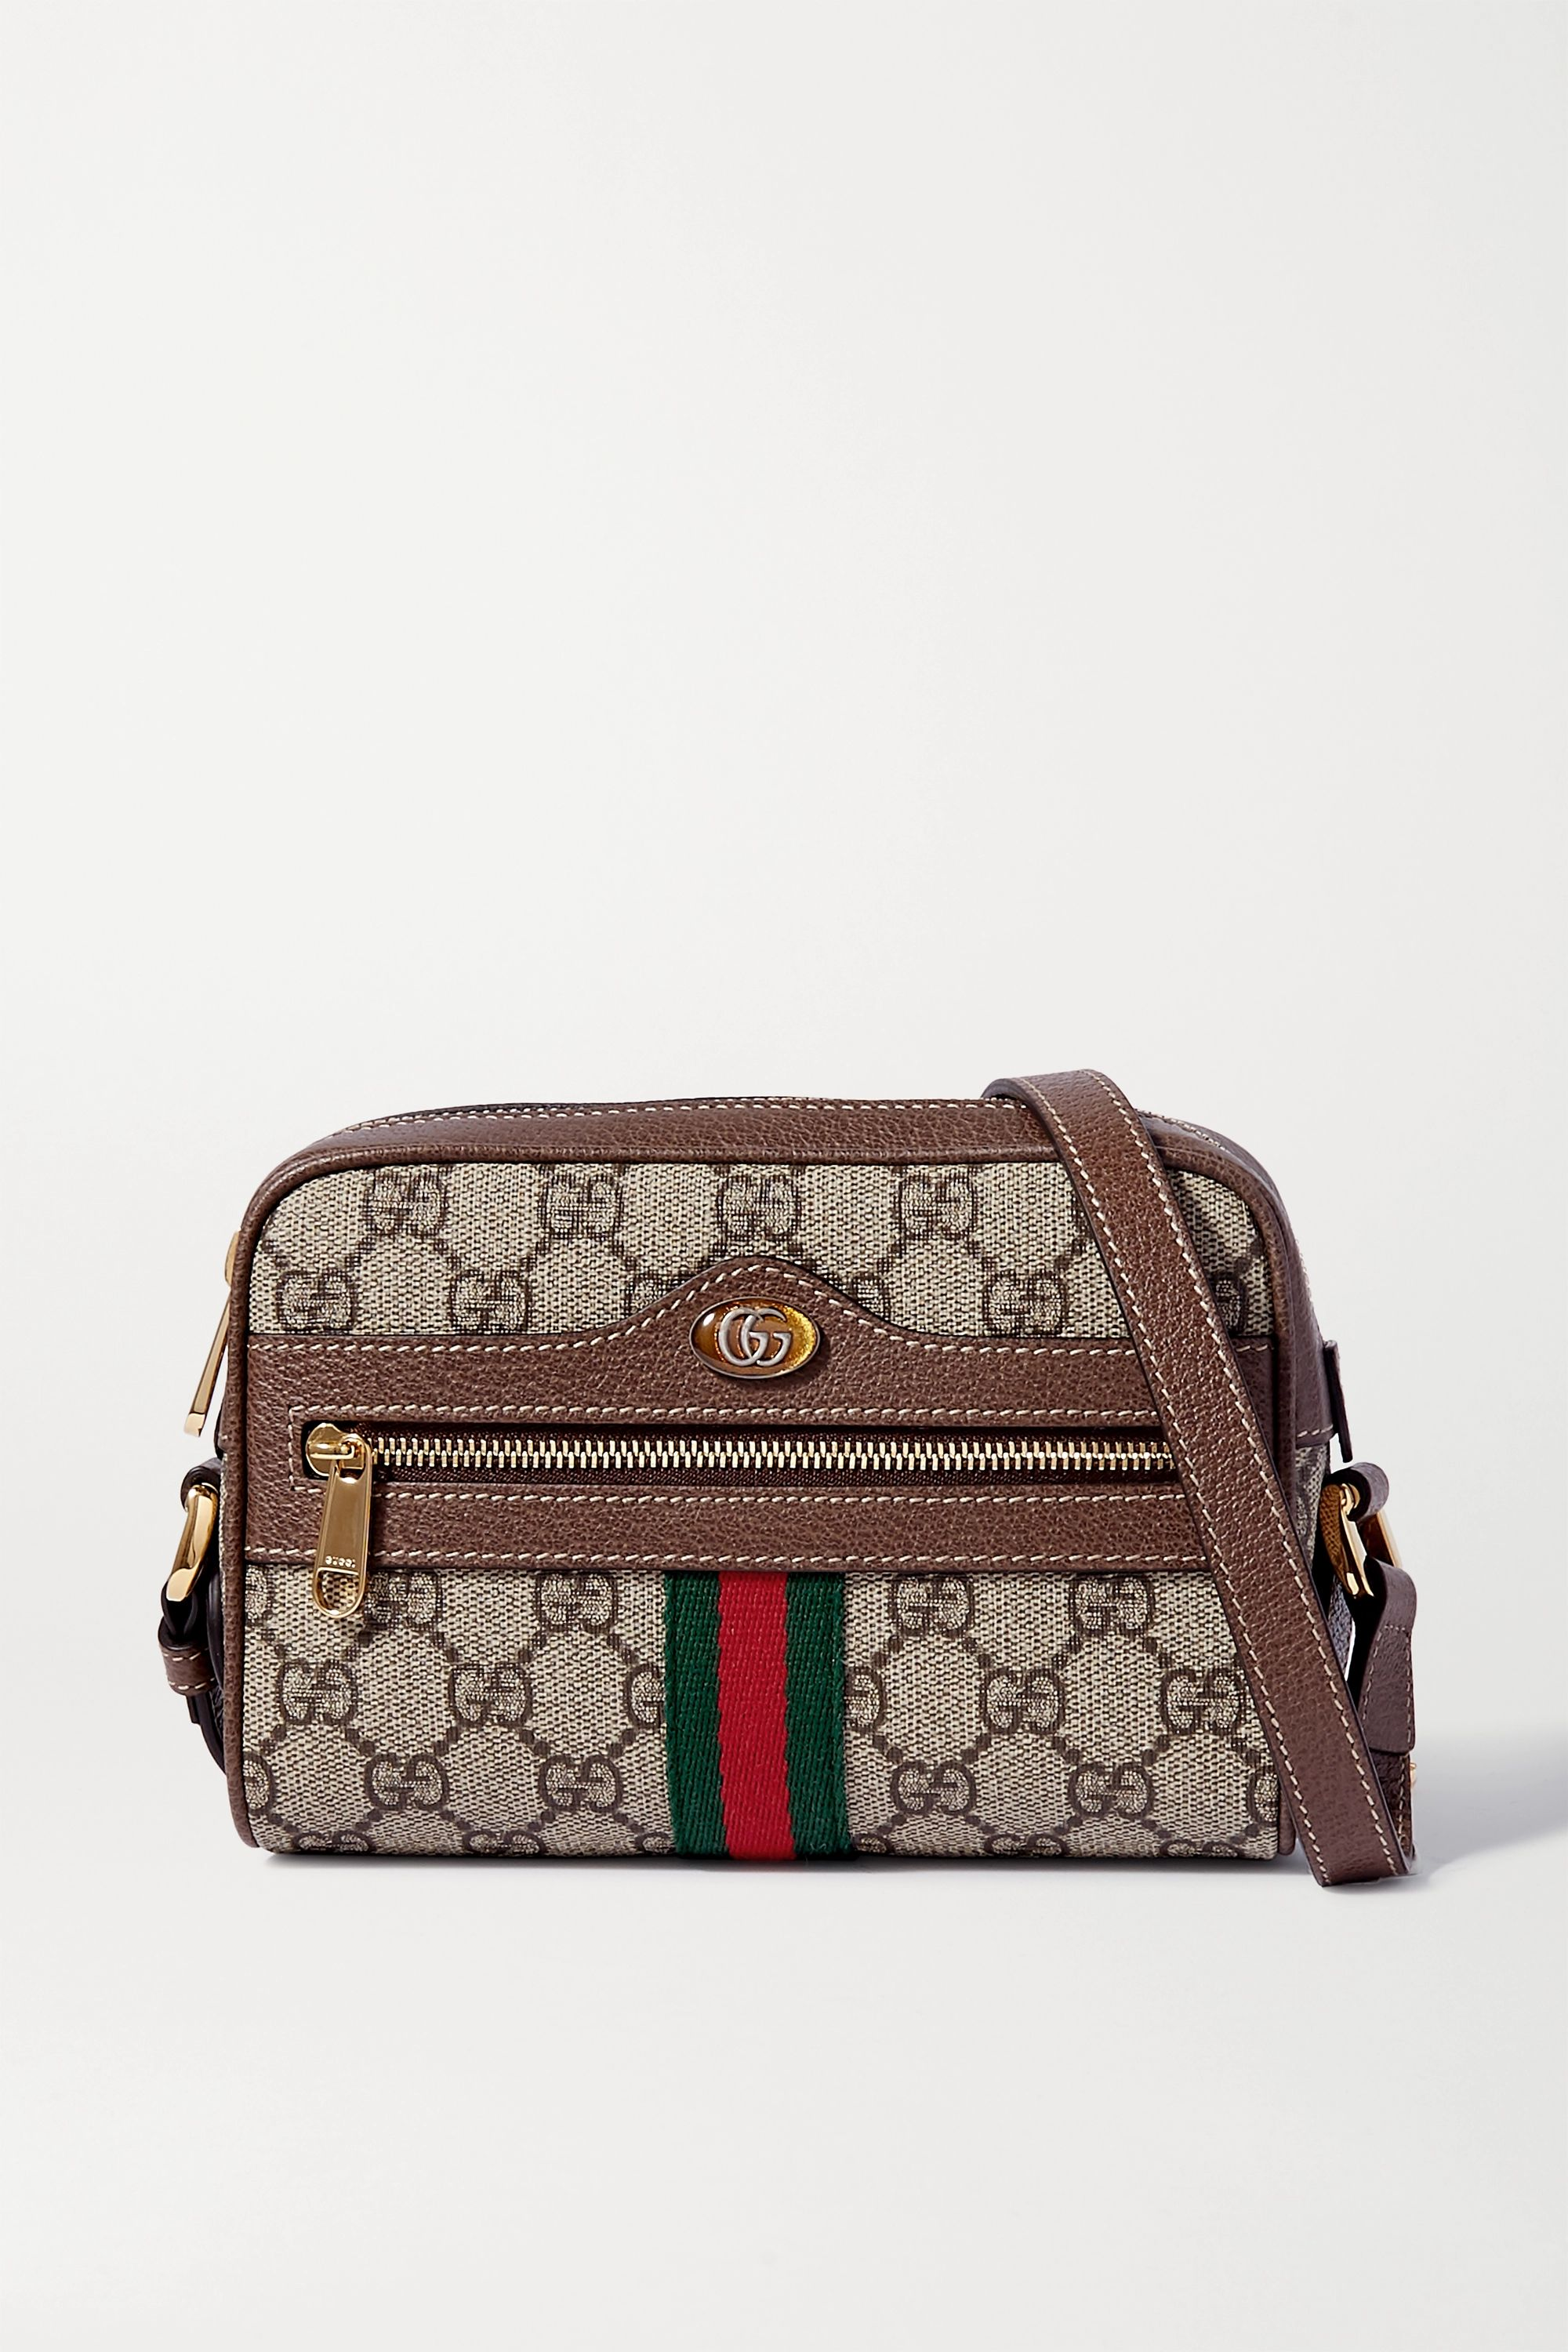 Brown Ophidia Small Leather Trimmed Printed Coated Canvas Camera Bag Gucci Net A Porter